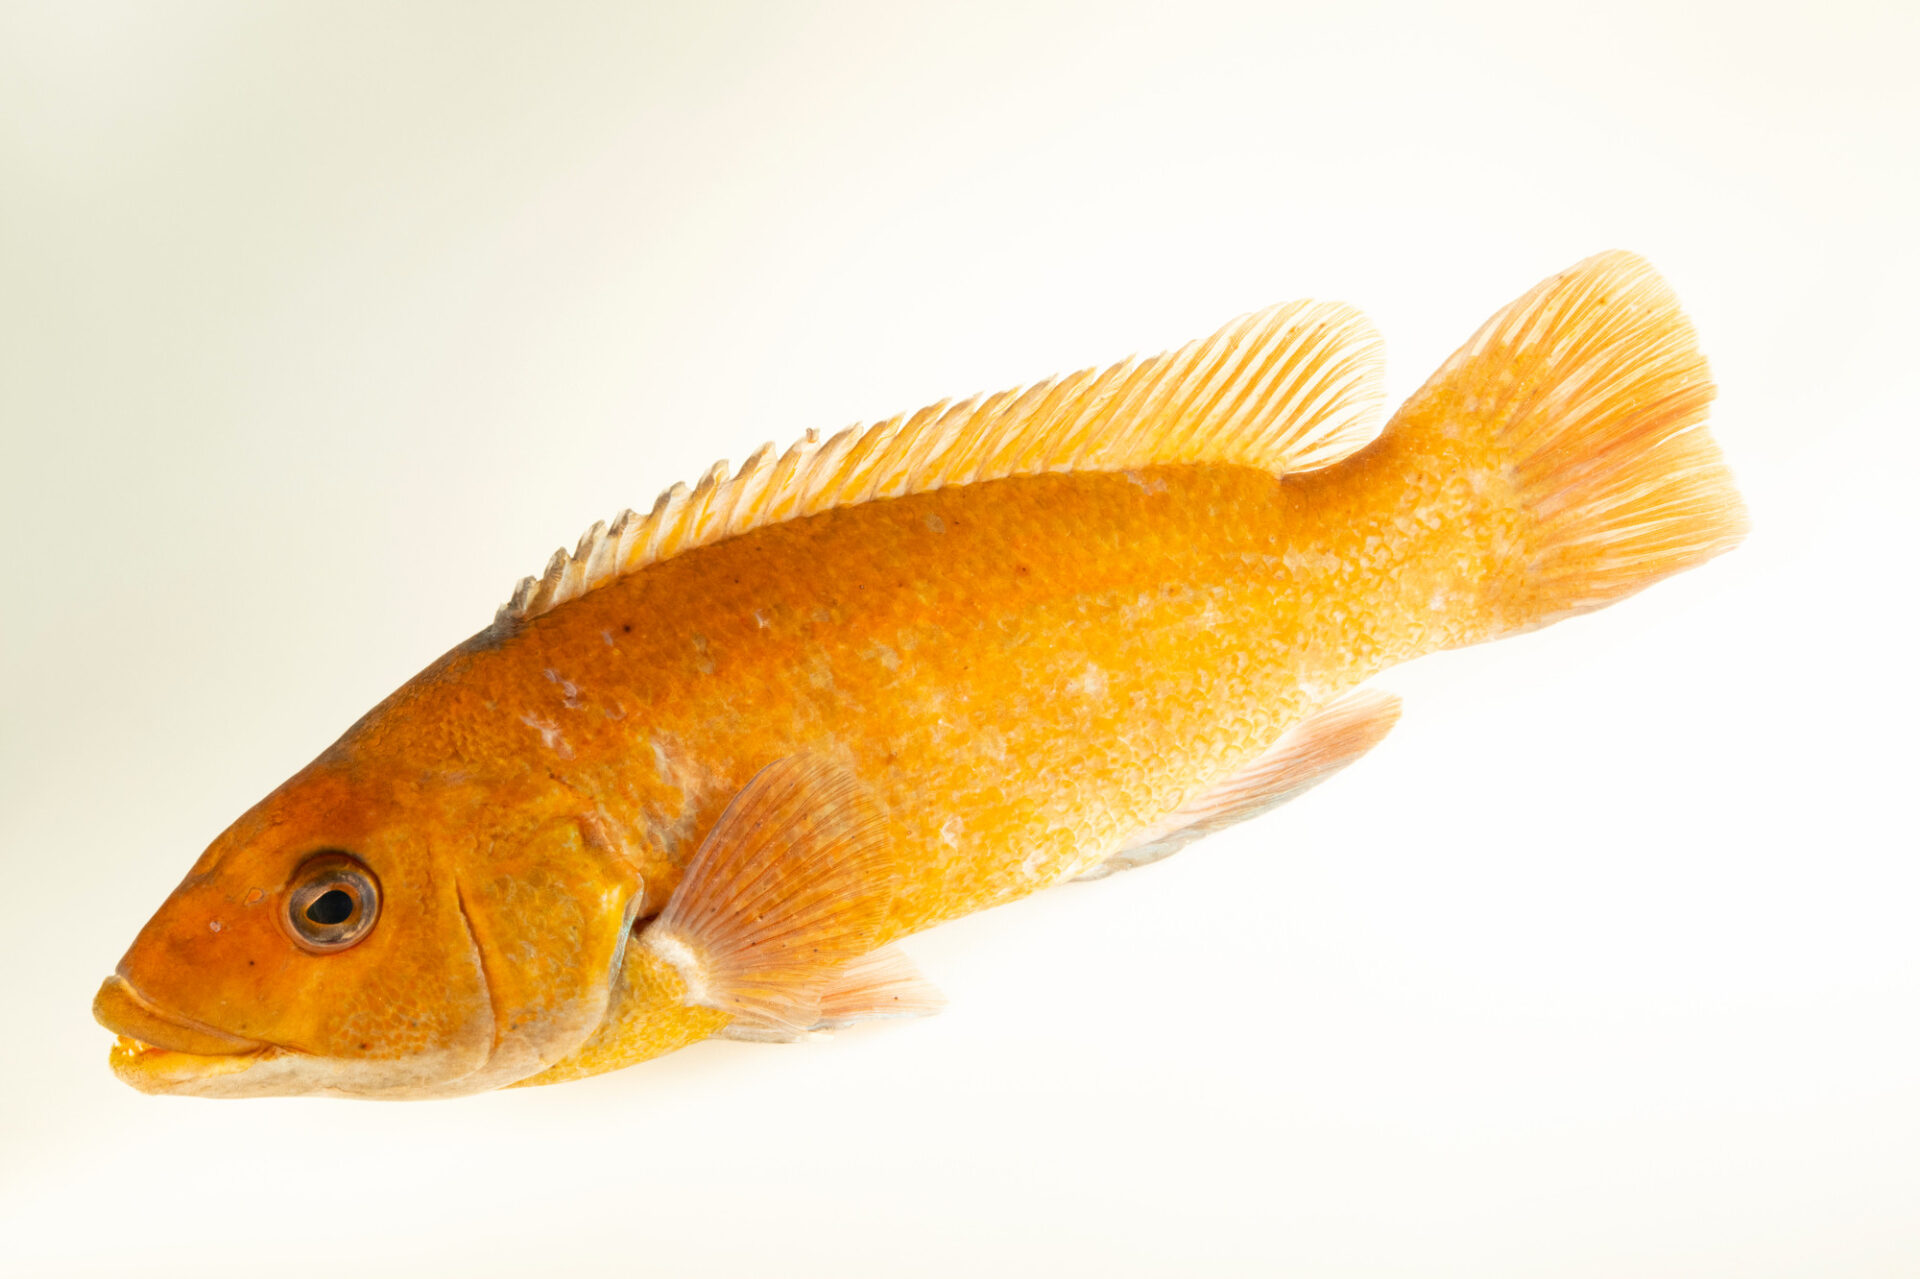 Photo: A cunner (Tautogolabrus adspersus) at the Maine State Aquarium in West Boothbay, ME.